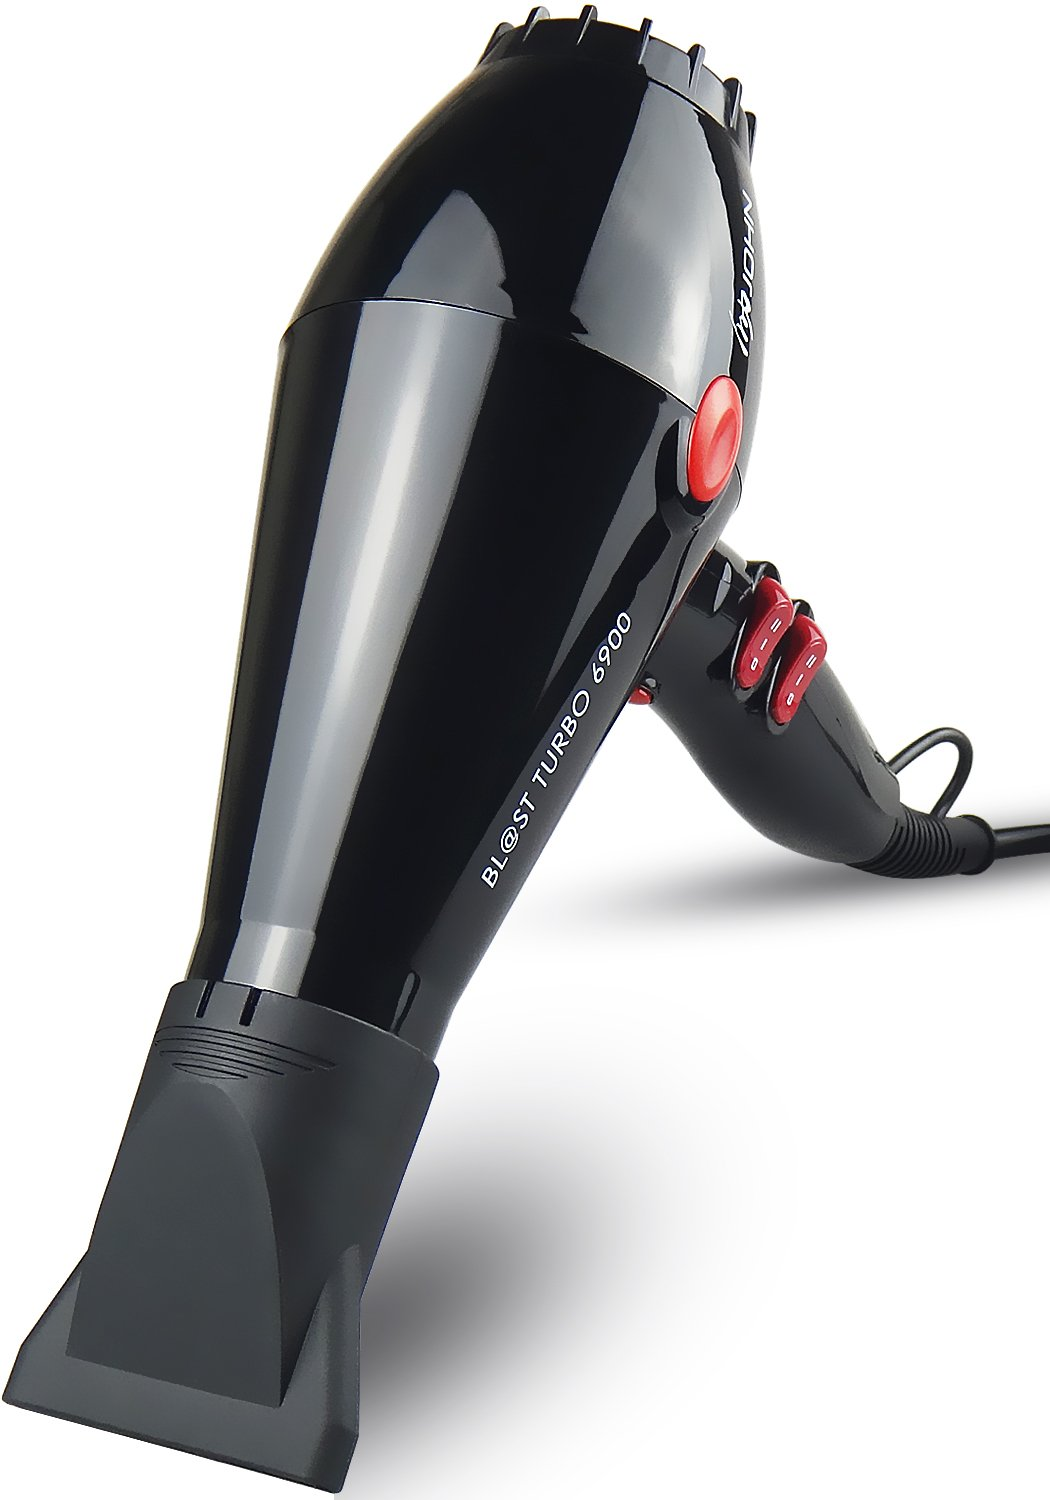 JOHN Blast 6900 Tourmaline Ceramic Ionic Professional Hair Dryer 2200W Powerful Fast Drying Blow Dryer 9Ft Cable AC Motor with 2 Nozzles for Salon Styling Glossy Black